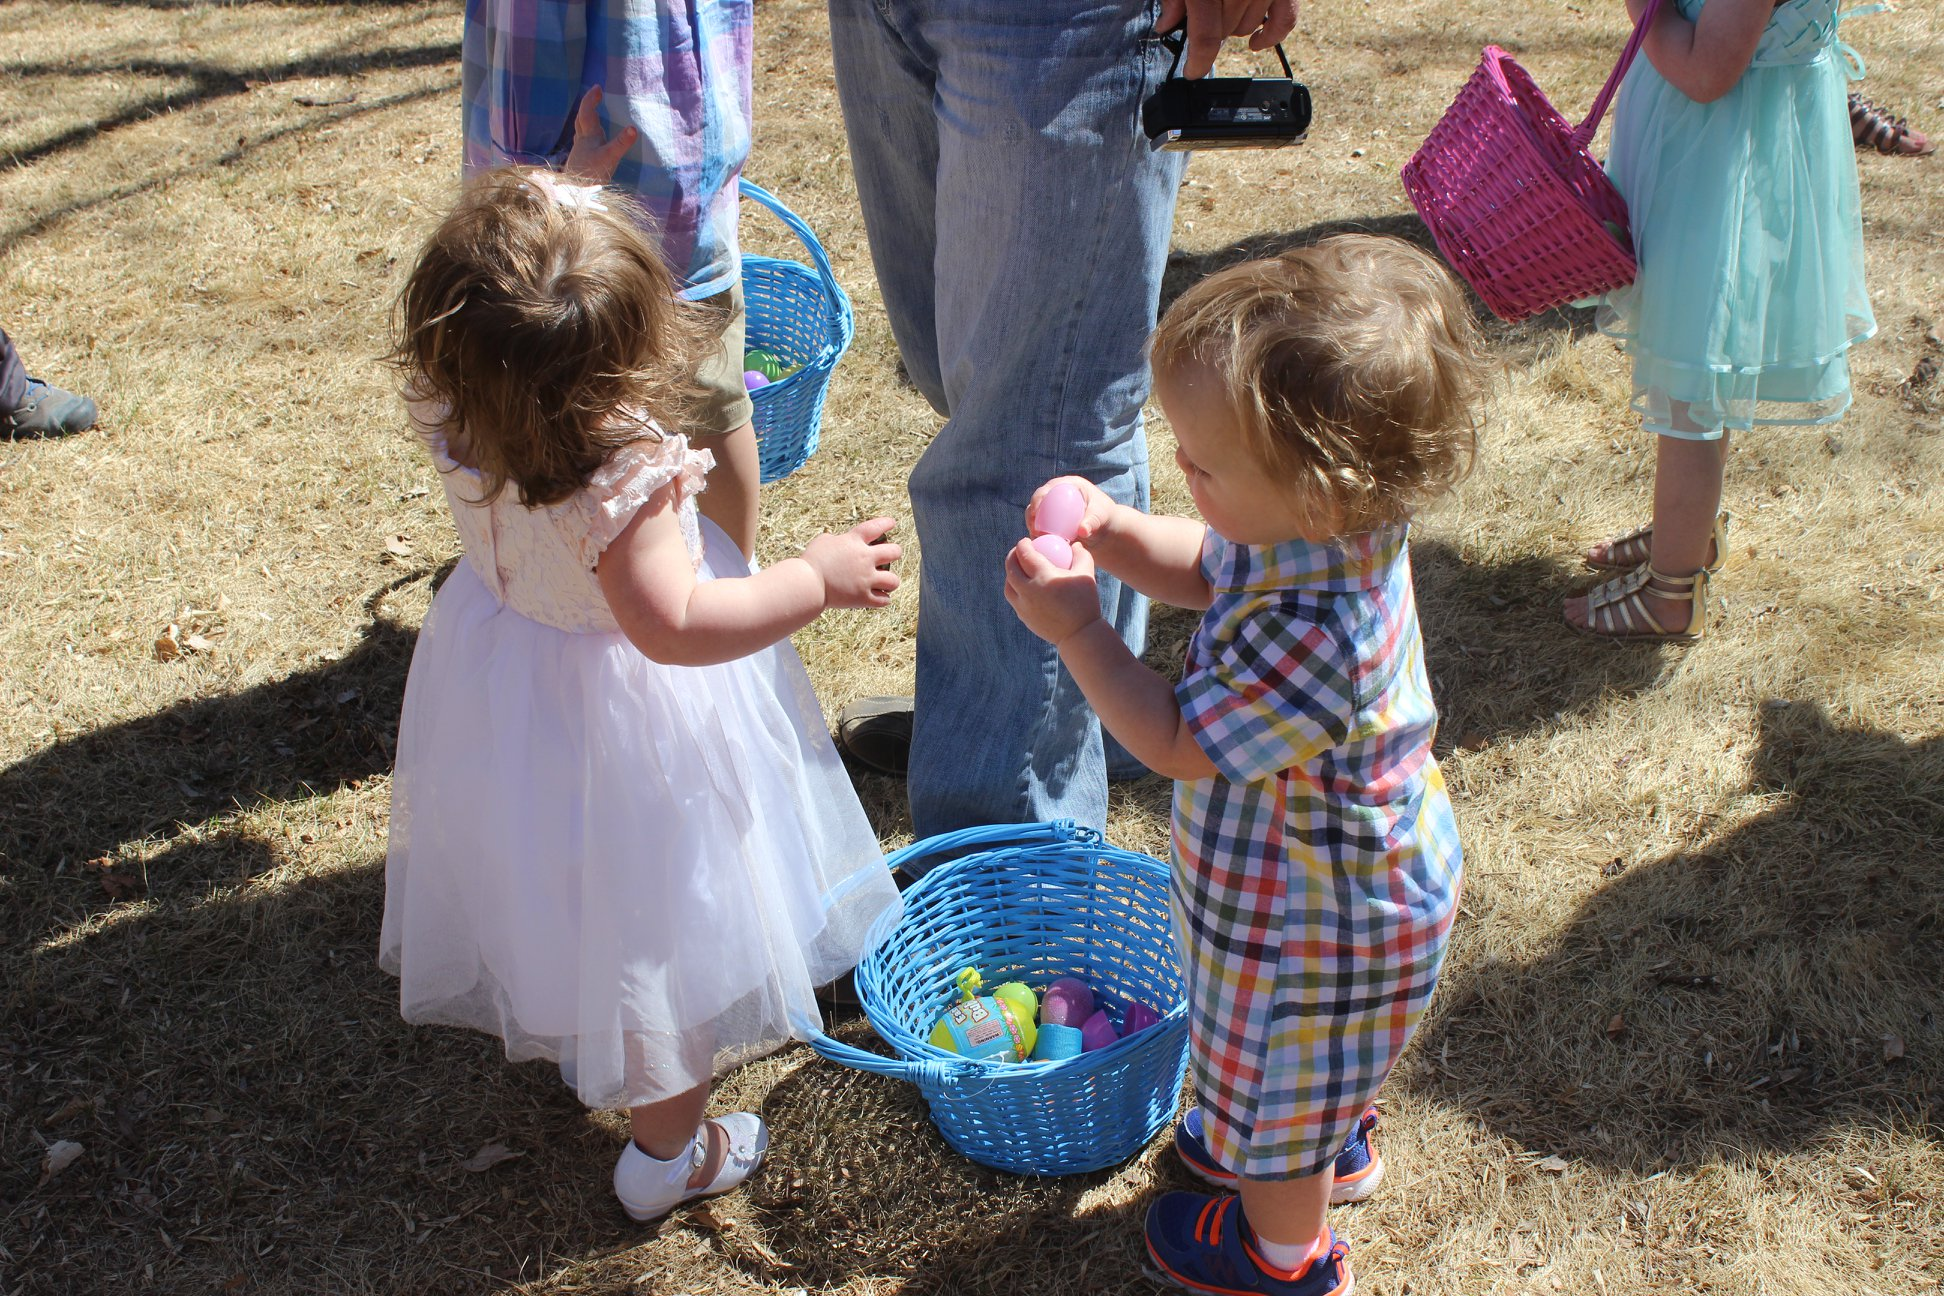 Every age group enjoyed the community Easter Egg Hunt on Saturday in Eads.  (Photo by: Riki Berry Cordova)